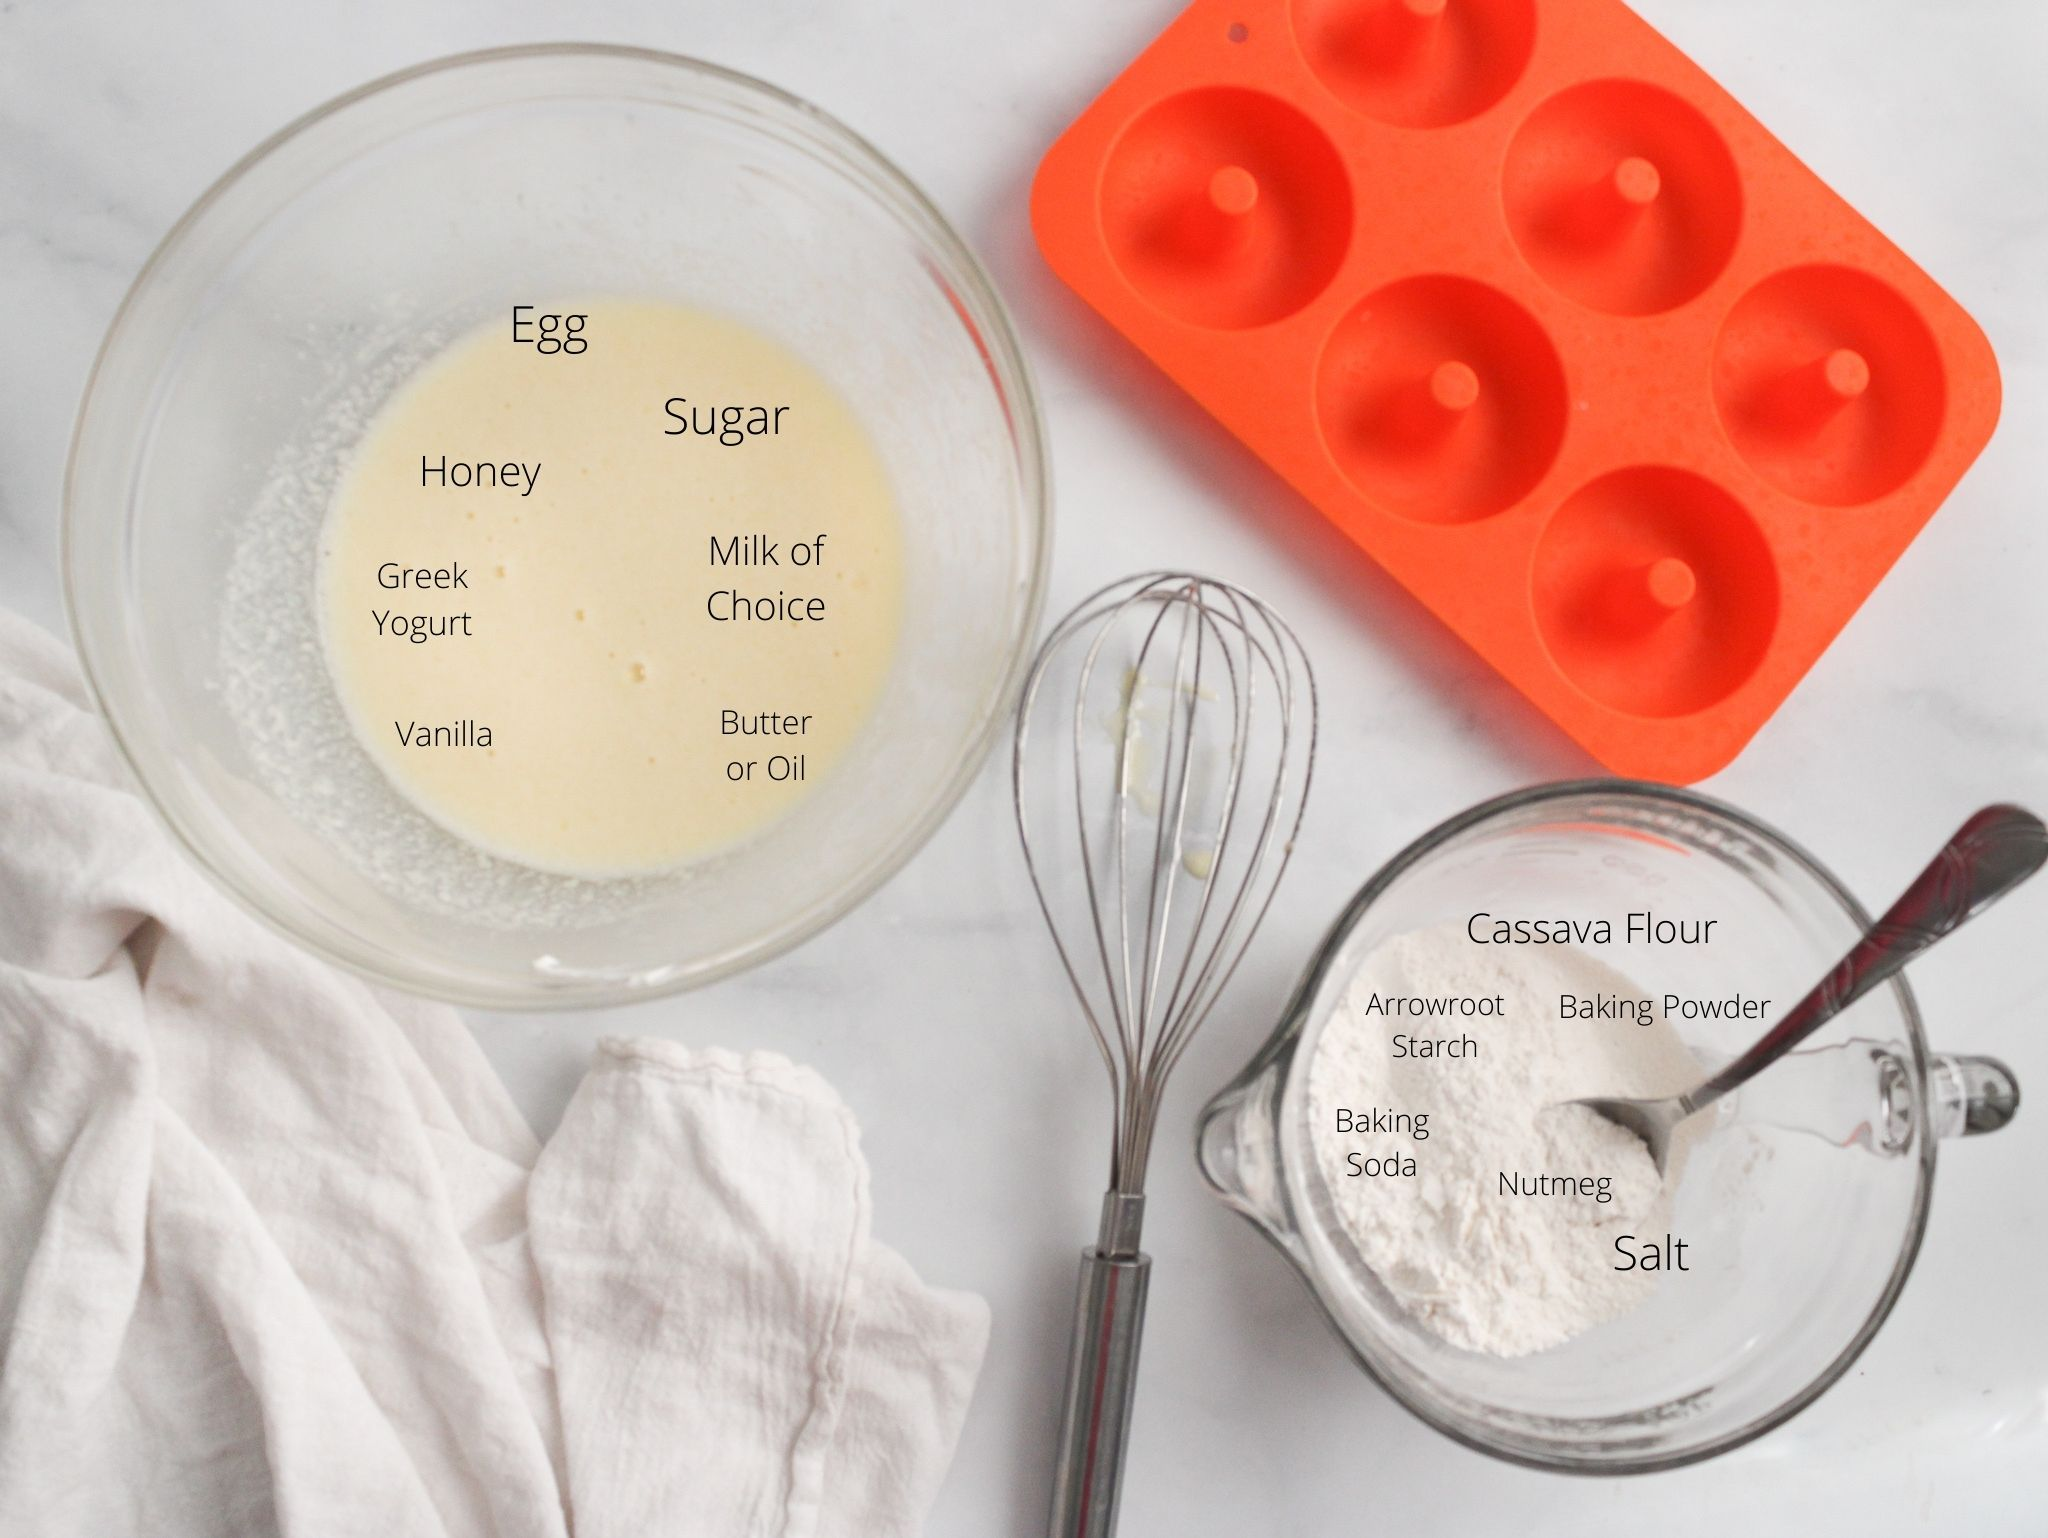 Donut ingredients in two glass bowls separated by wet and dry. One bowl has the cassava flour, arrowroot starch, baking powder, baking soda, nutmeg, and salt. The other has the egg, sugar, honey, milk, greek yogurt, butter and vanilla. The bowls are sitting next to an orange silicon donut pan.,